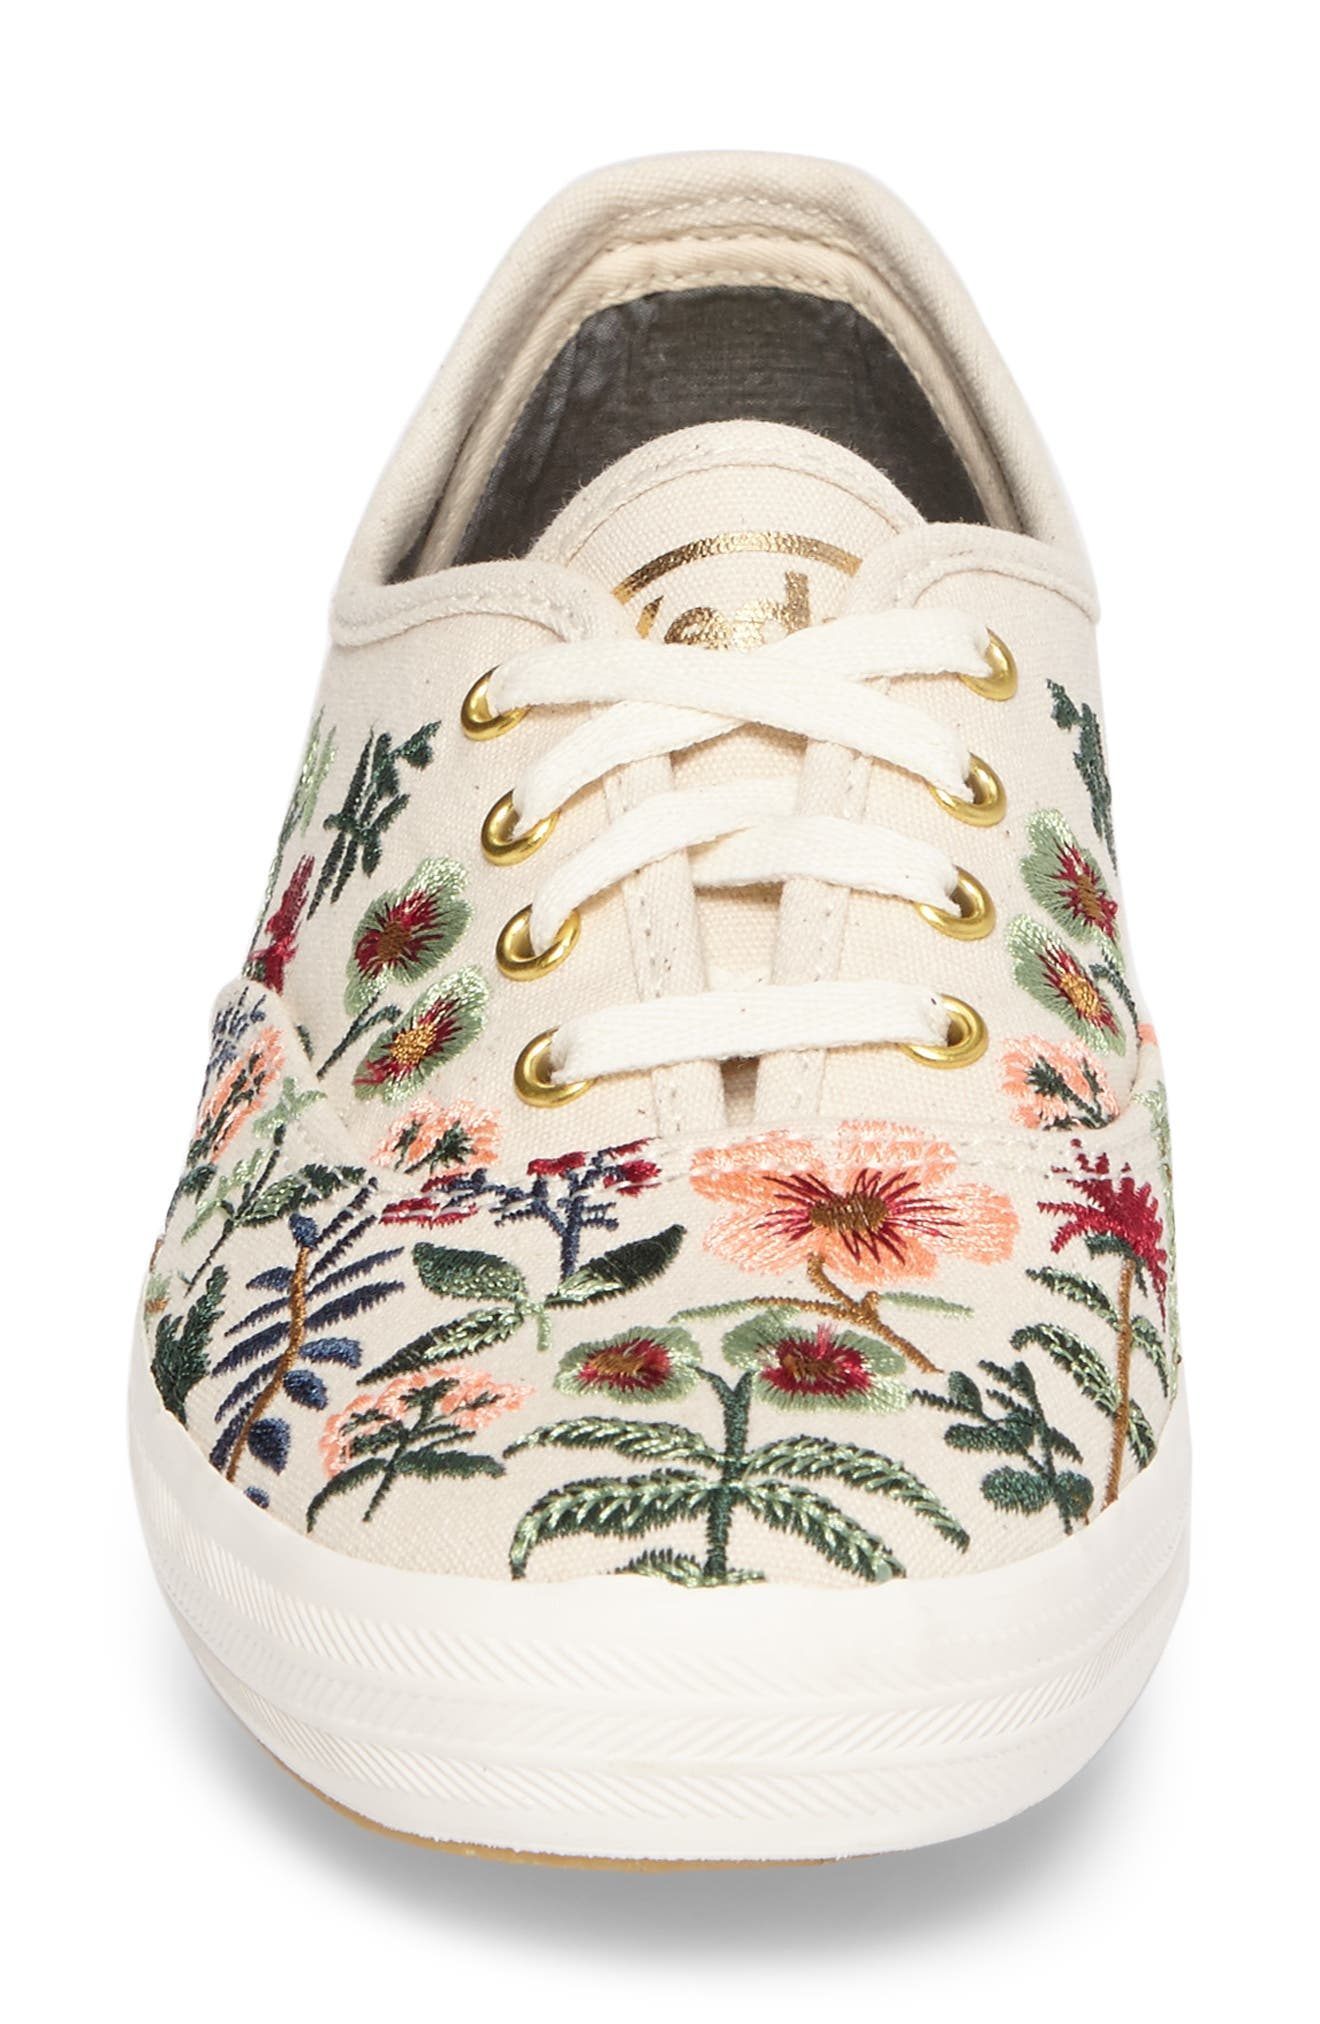 x Rifle Paper Co. Herb Garden Embroidered Sneaker,                             Alternate thumbnail 4, color,                             101